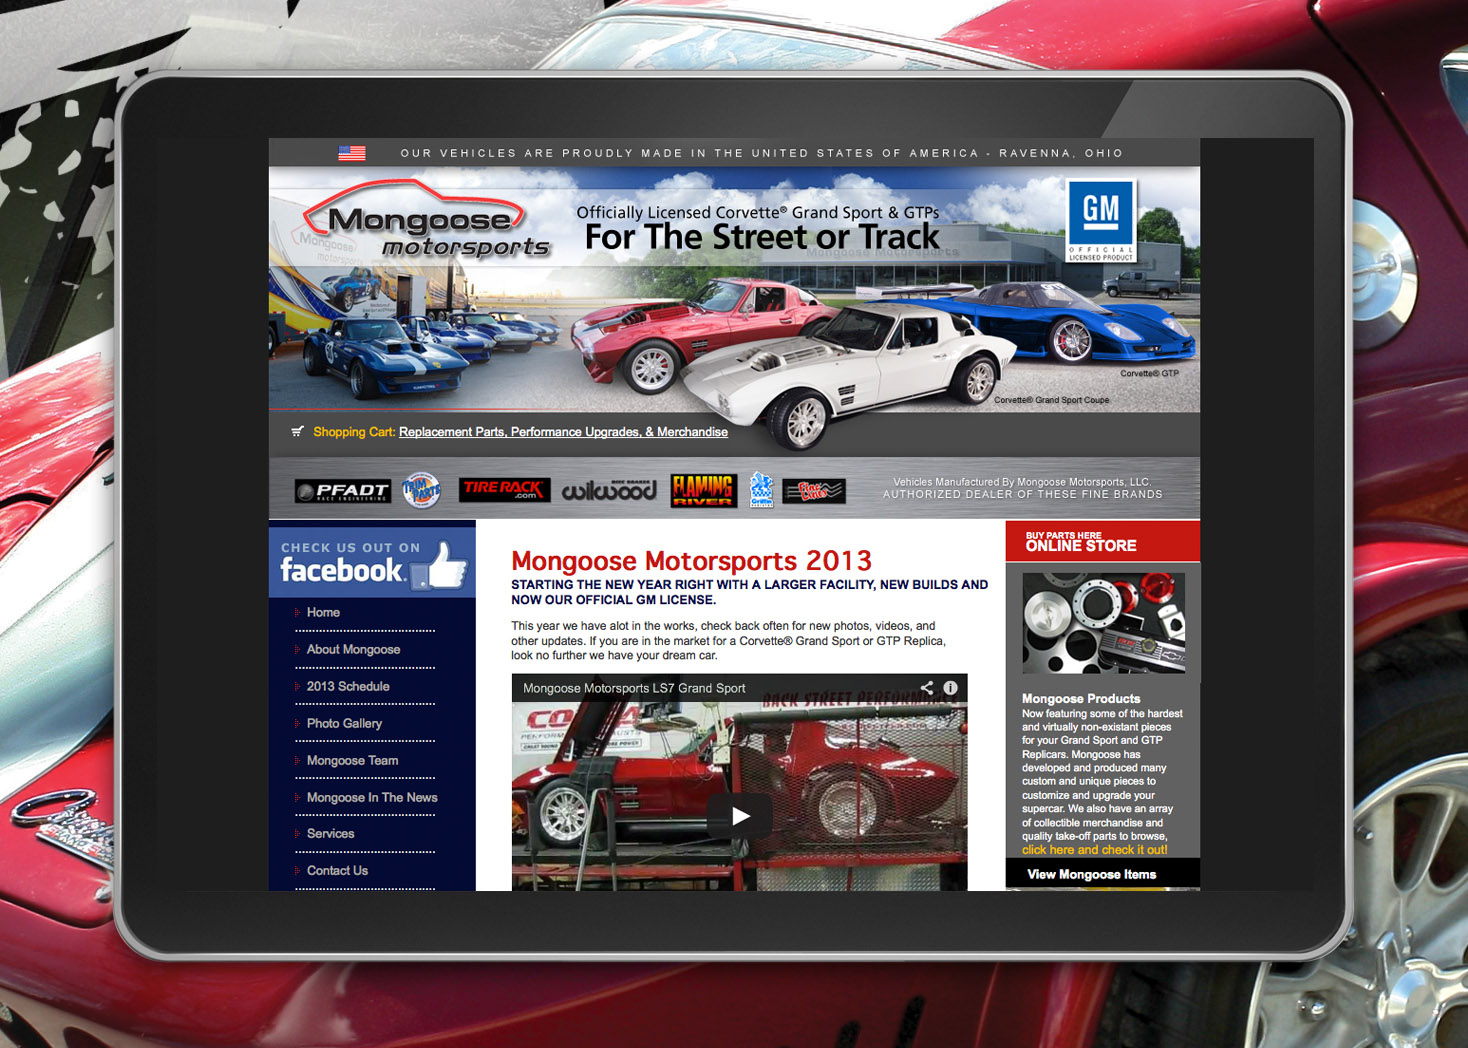 Mongoose Motorsports - Website Design - Les Lehman Design